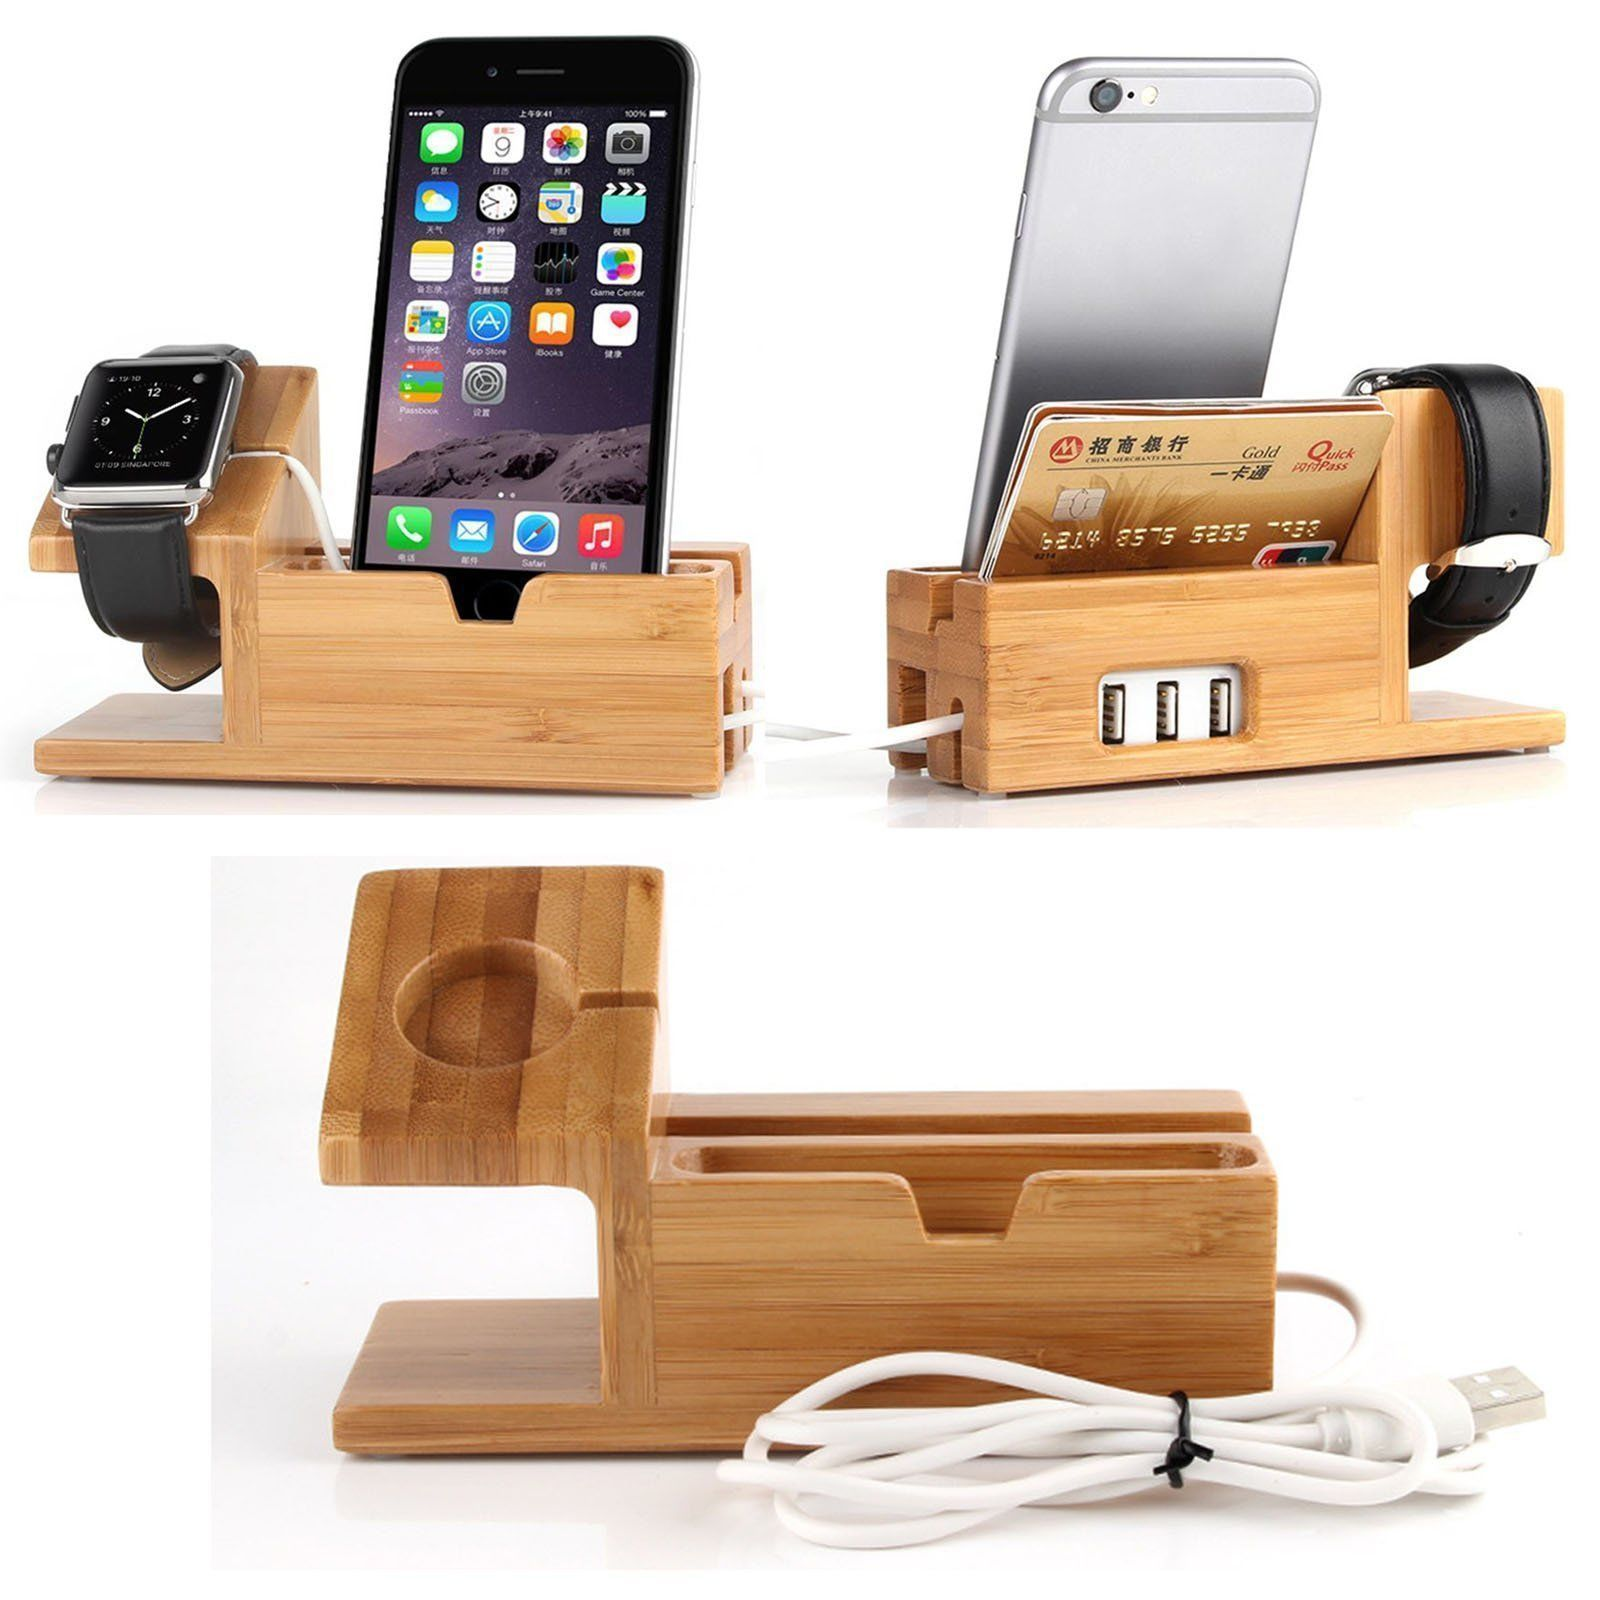 Mobile Phone Holders & Stands Mobile Phone Accessories Industrious Universal Portable Aluminum Adjustable Desk Phone Stand Holder For Mobile Phone And Tablet